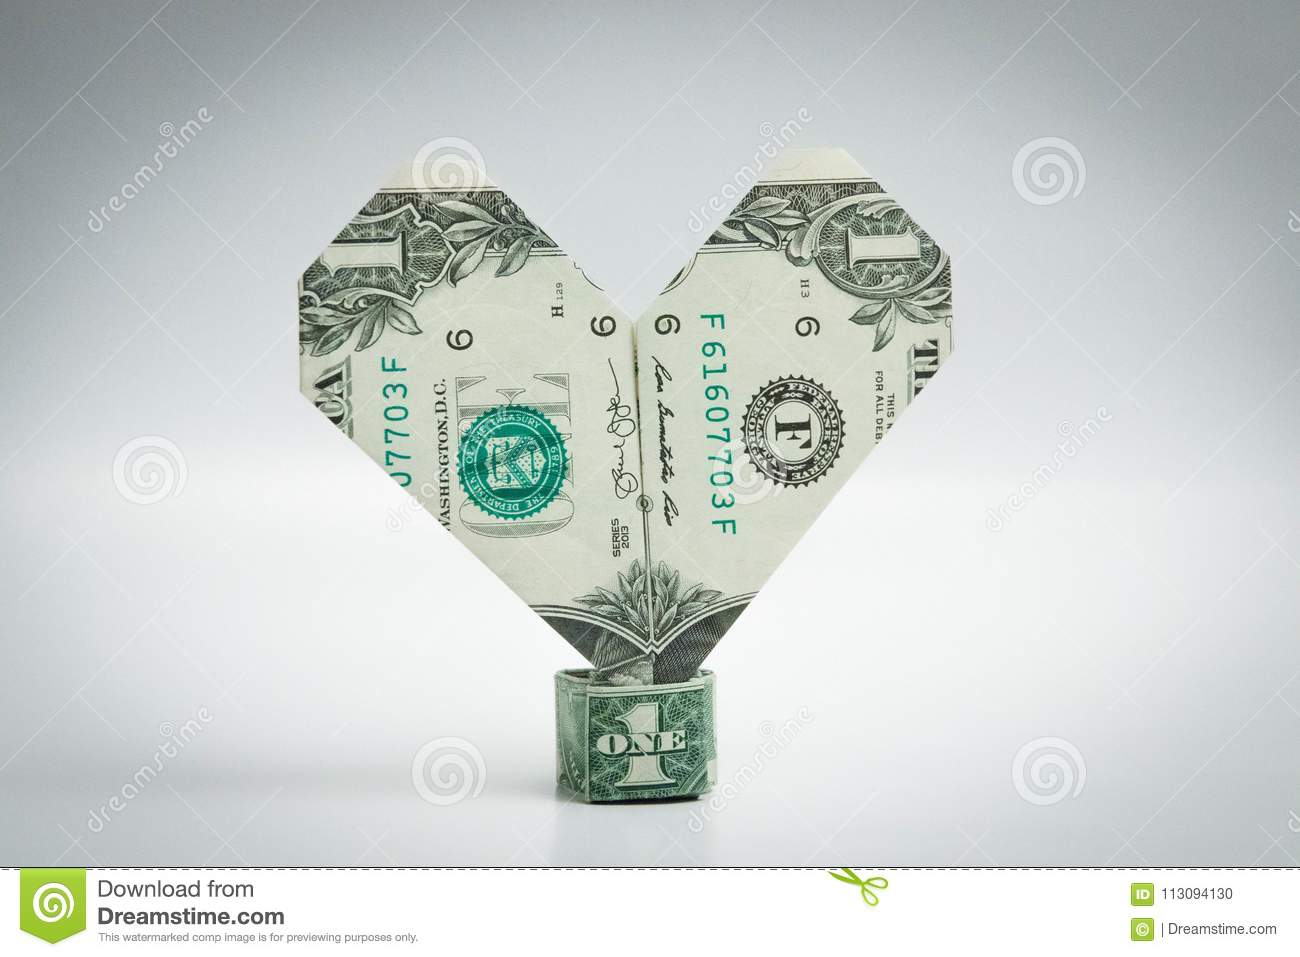 Origami Heart And Ring Dollar Bill One Dollar Stock Photo Image Of